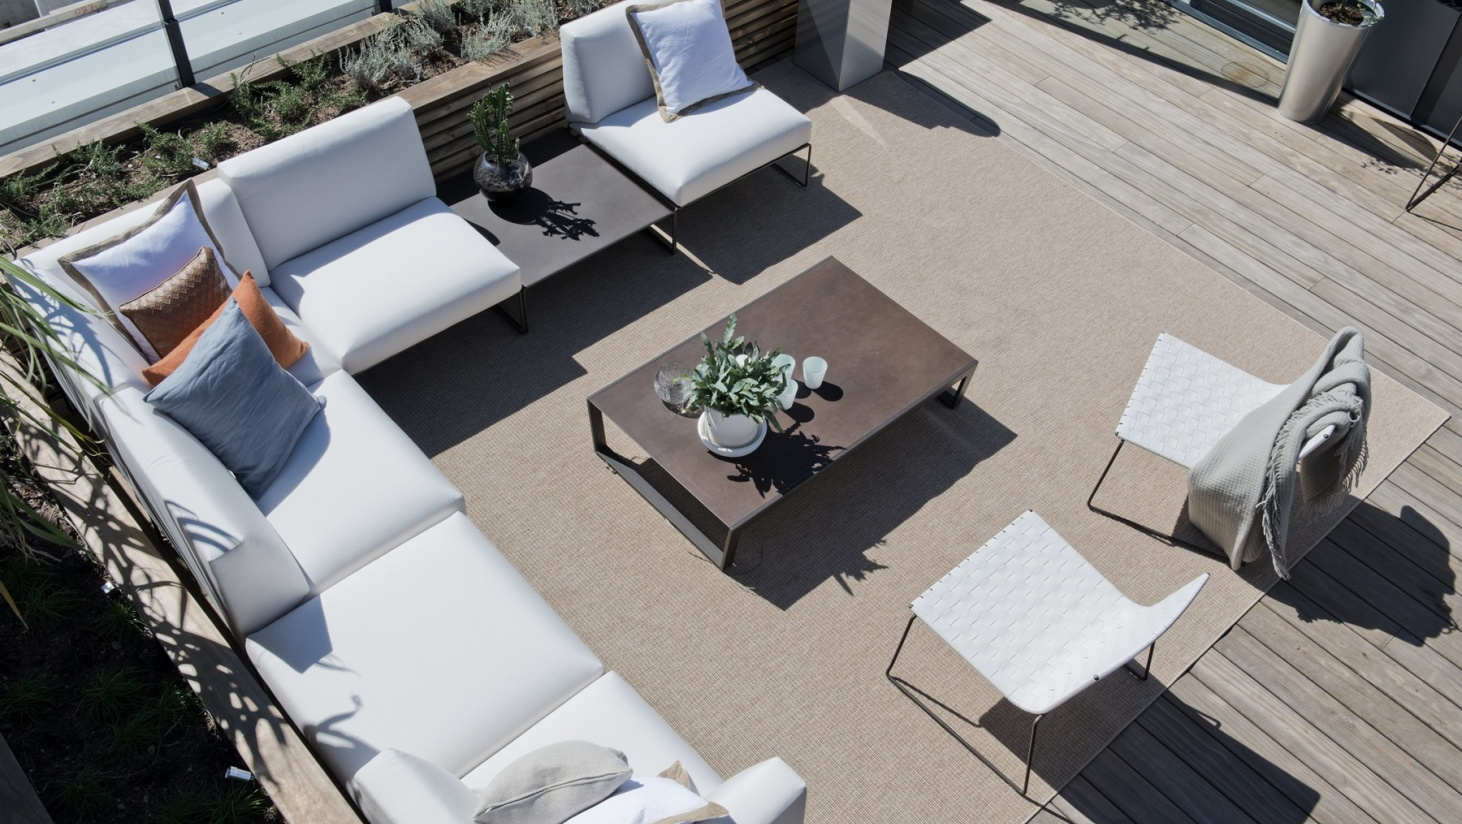 Awesome rooftop deck design ideas gallery decoration for Rooftop deck design ideas